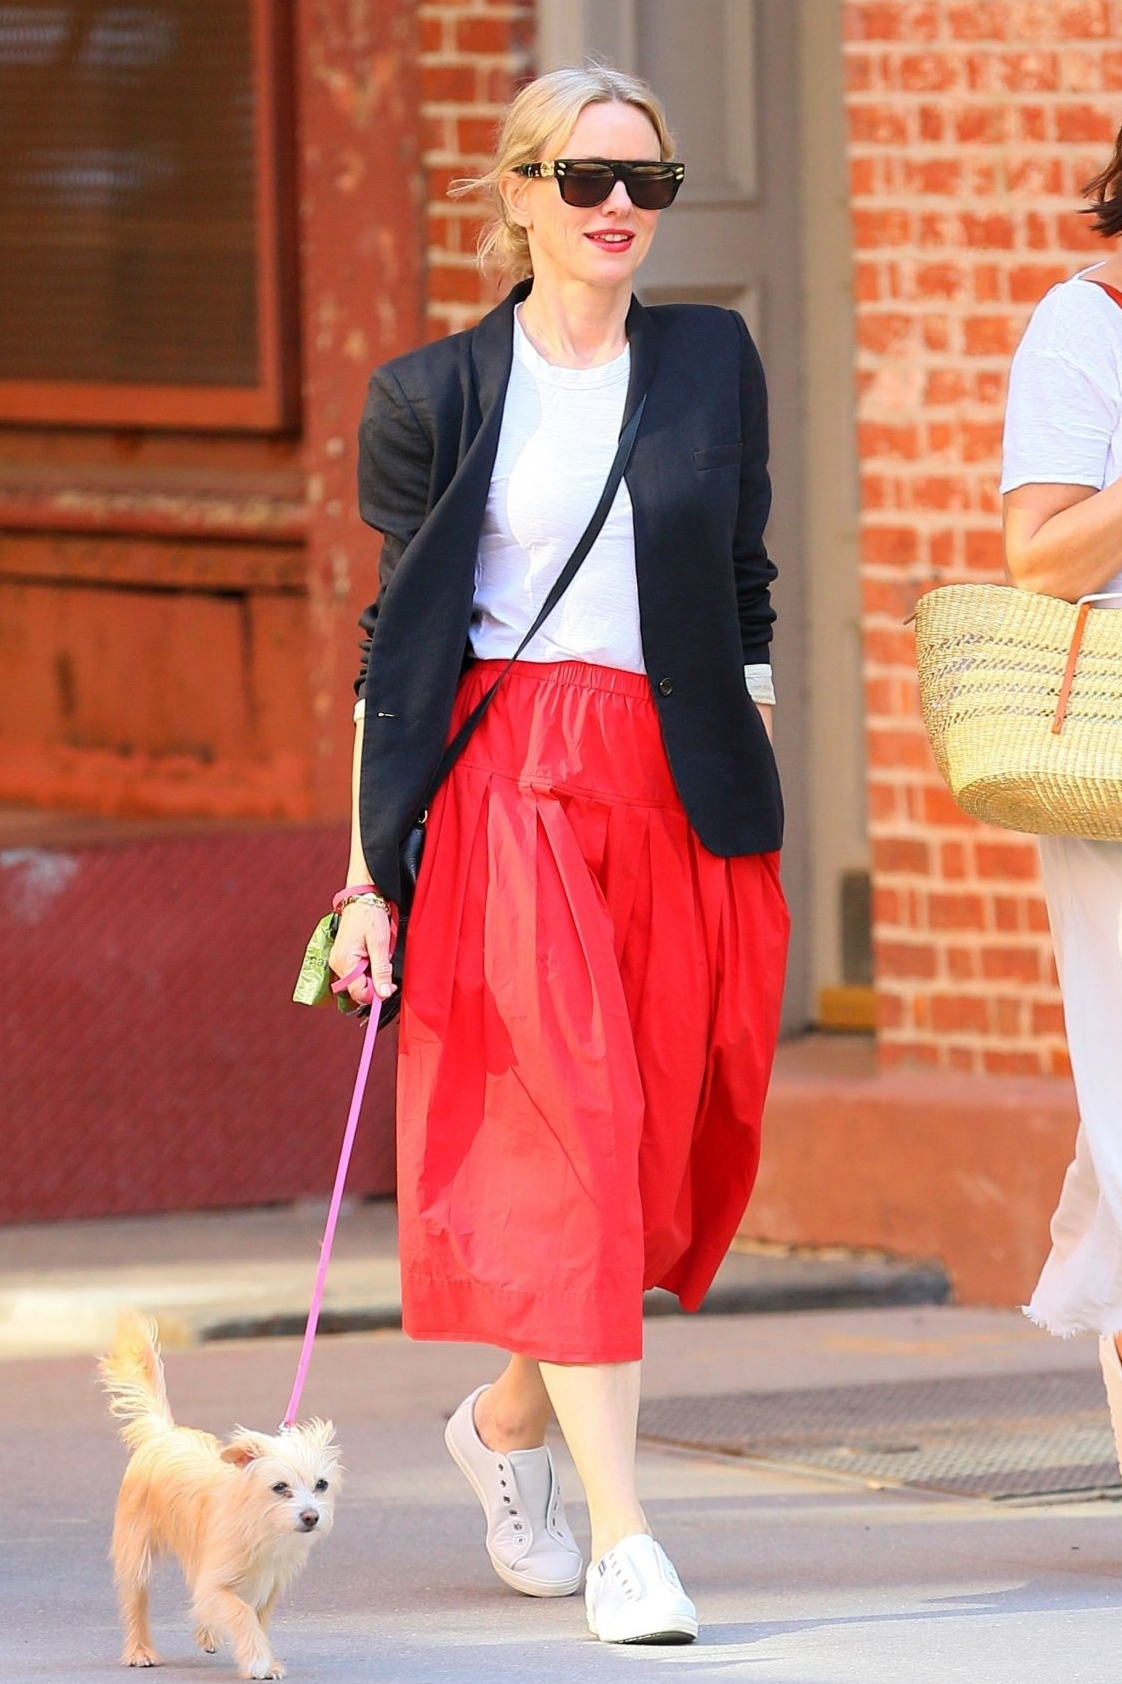 naomi-watts-walking-her-dog-out-in-new-york-may-21-2021